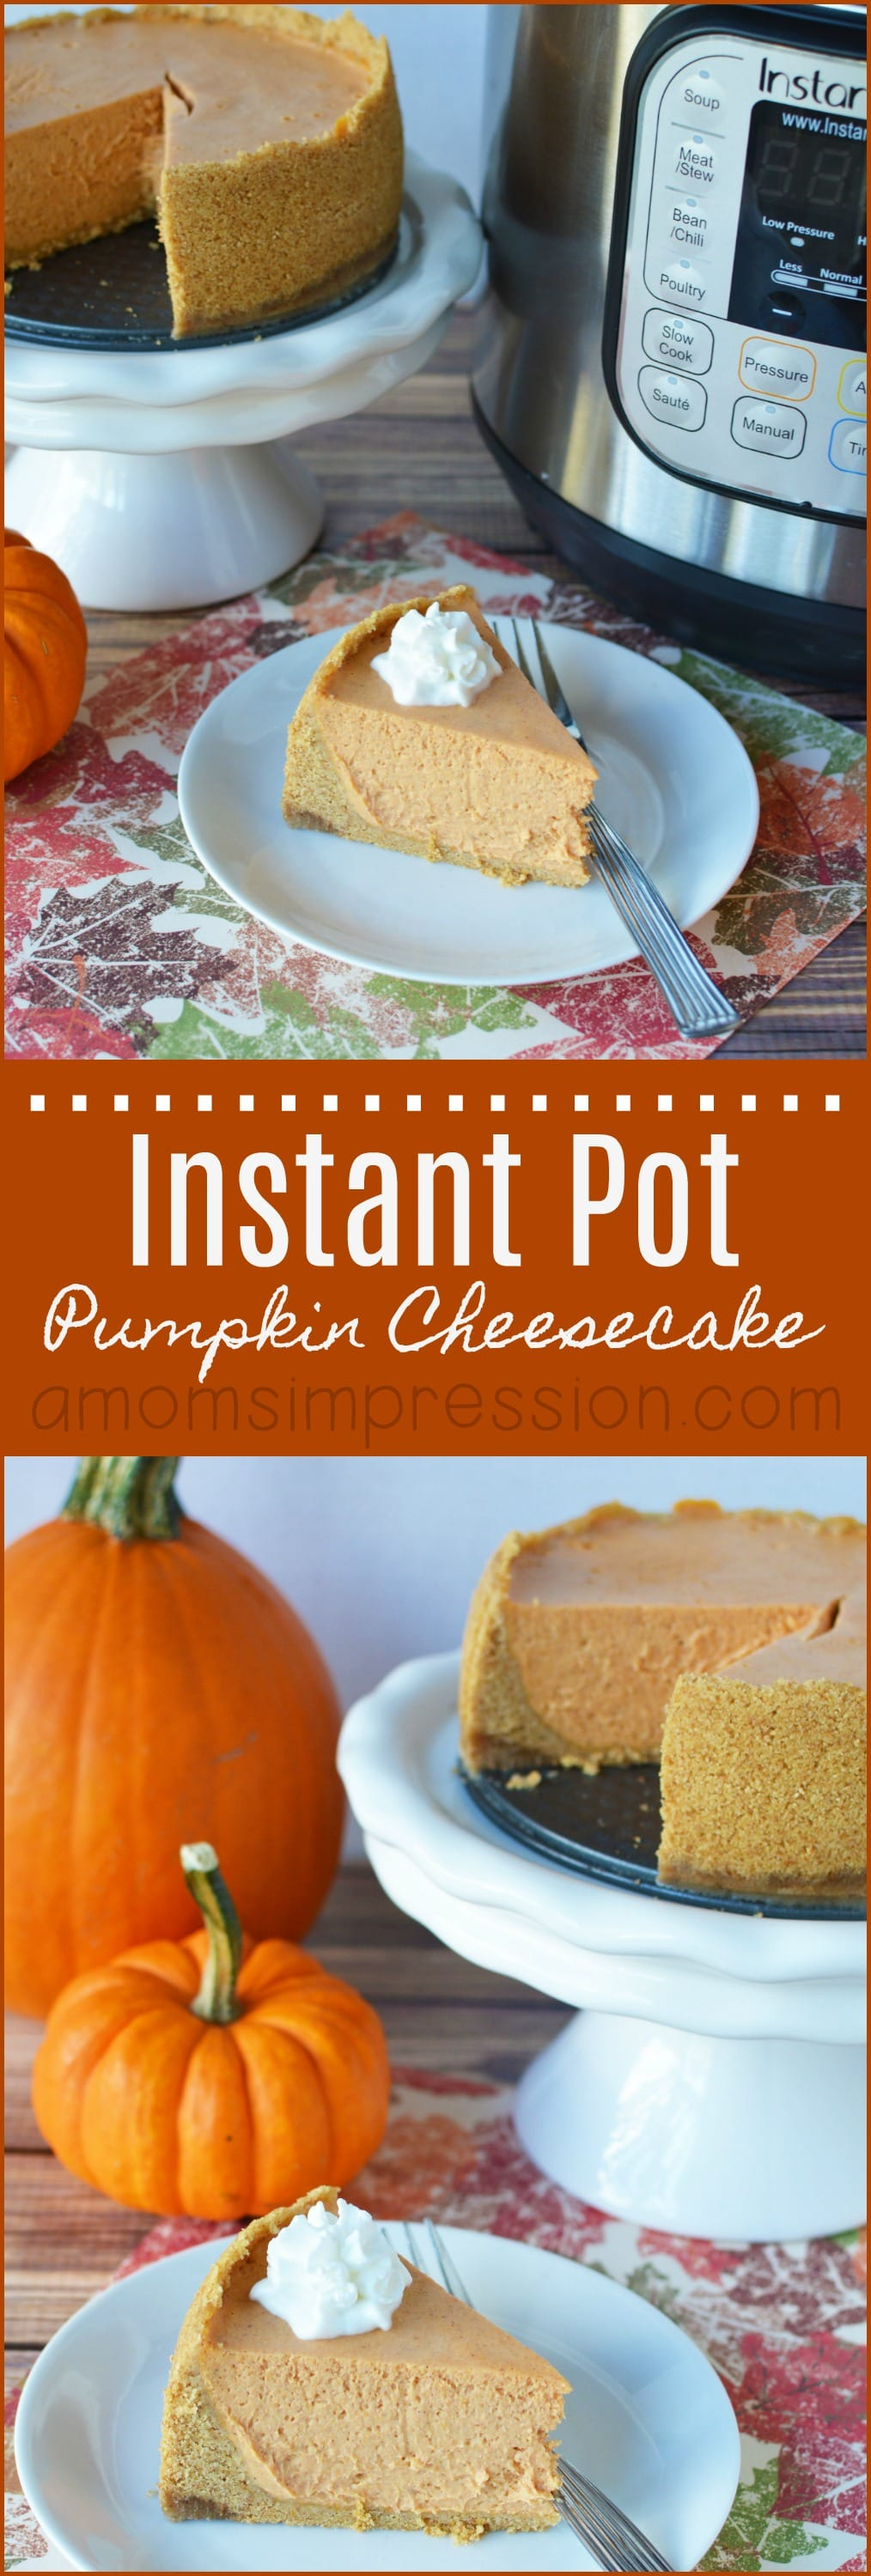 Instant Pot cheesecake recipes are so easy to make. This 6 inch pumpkin cheesecake can be made in your pressure cooker in minutes. You could even make mini versions in little jars!